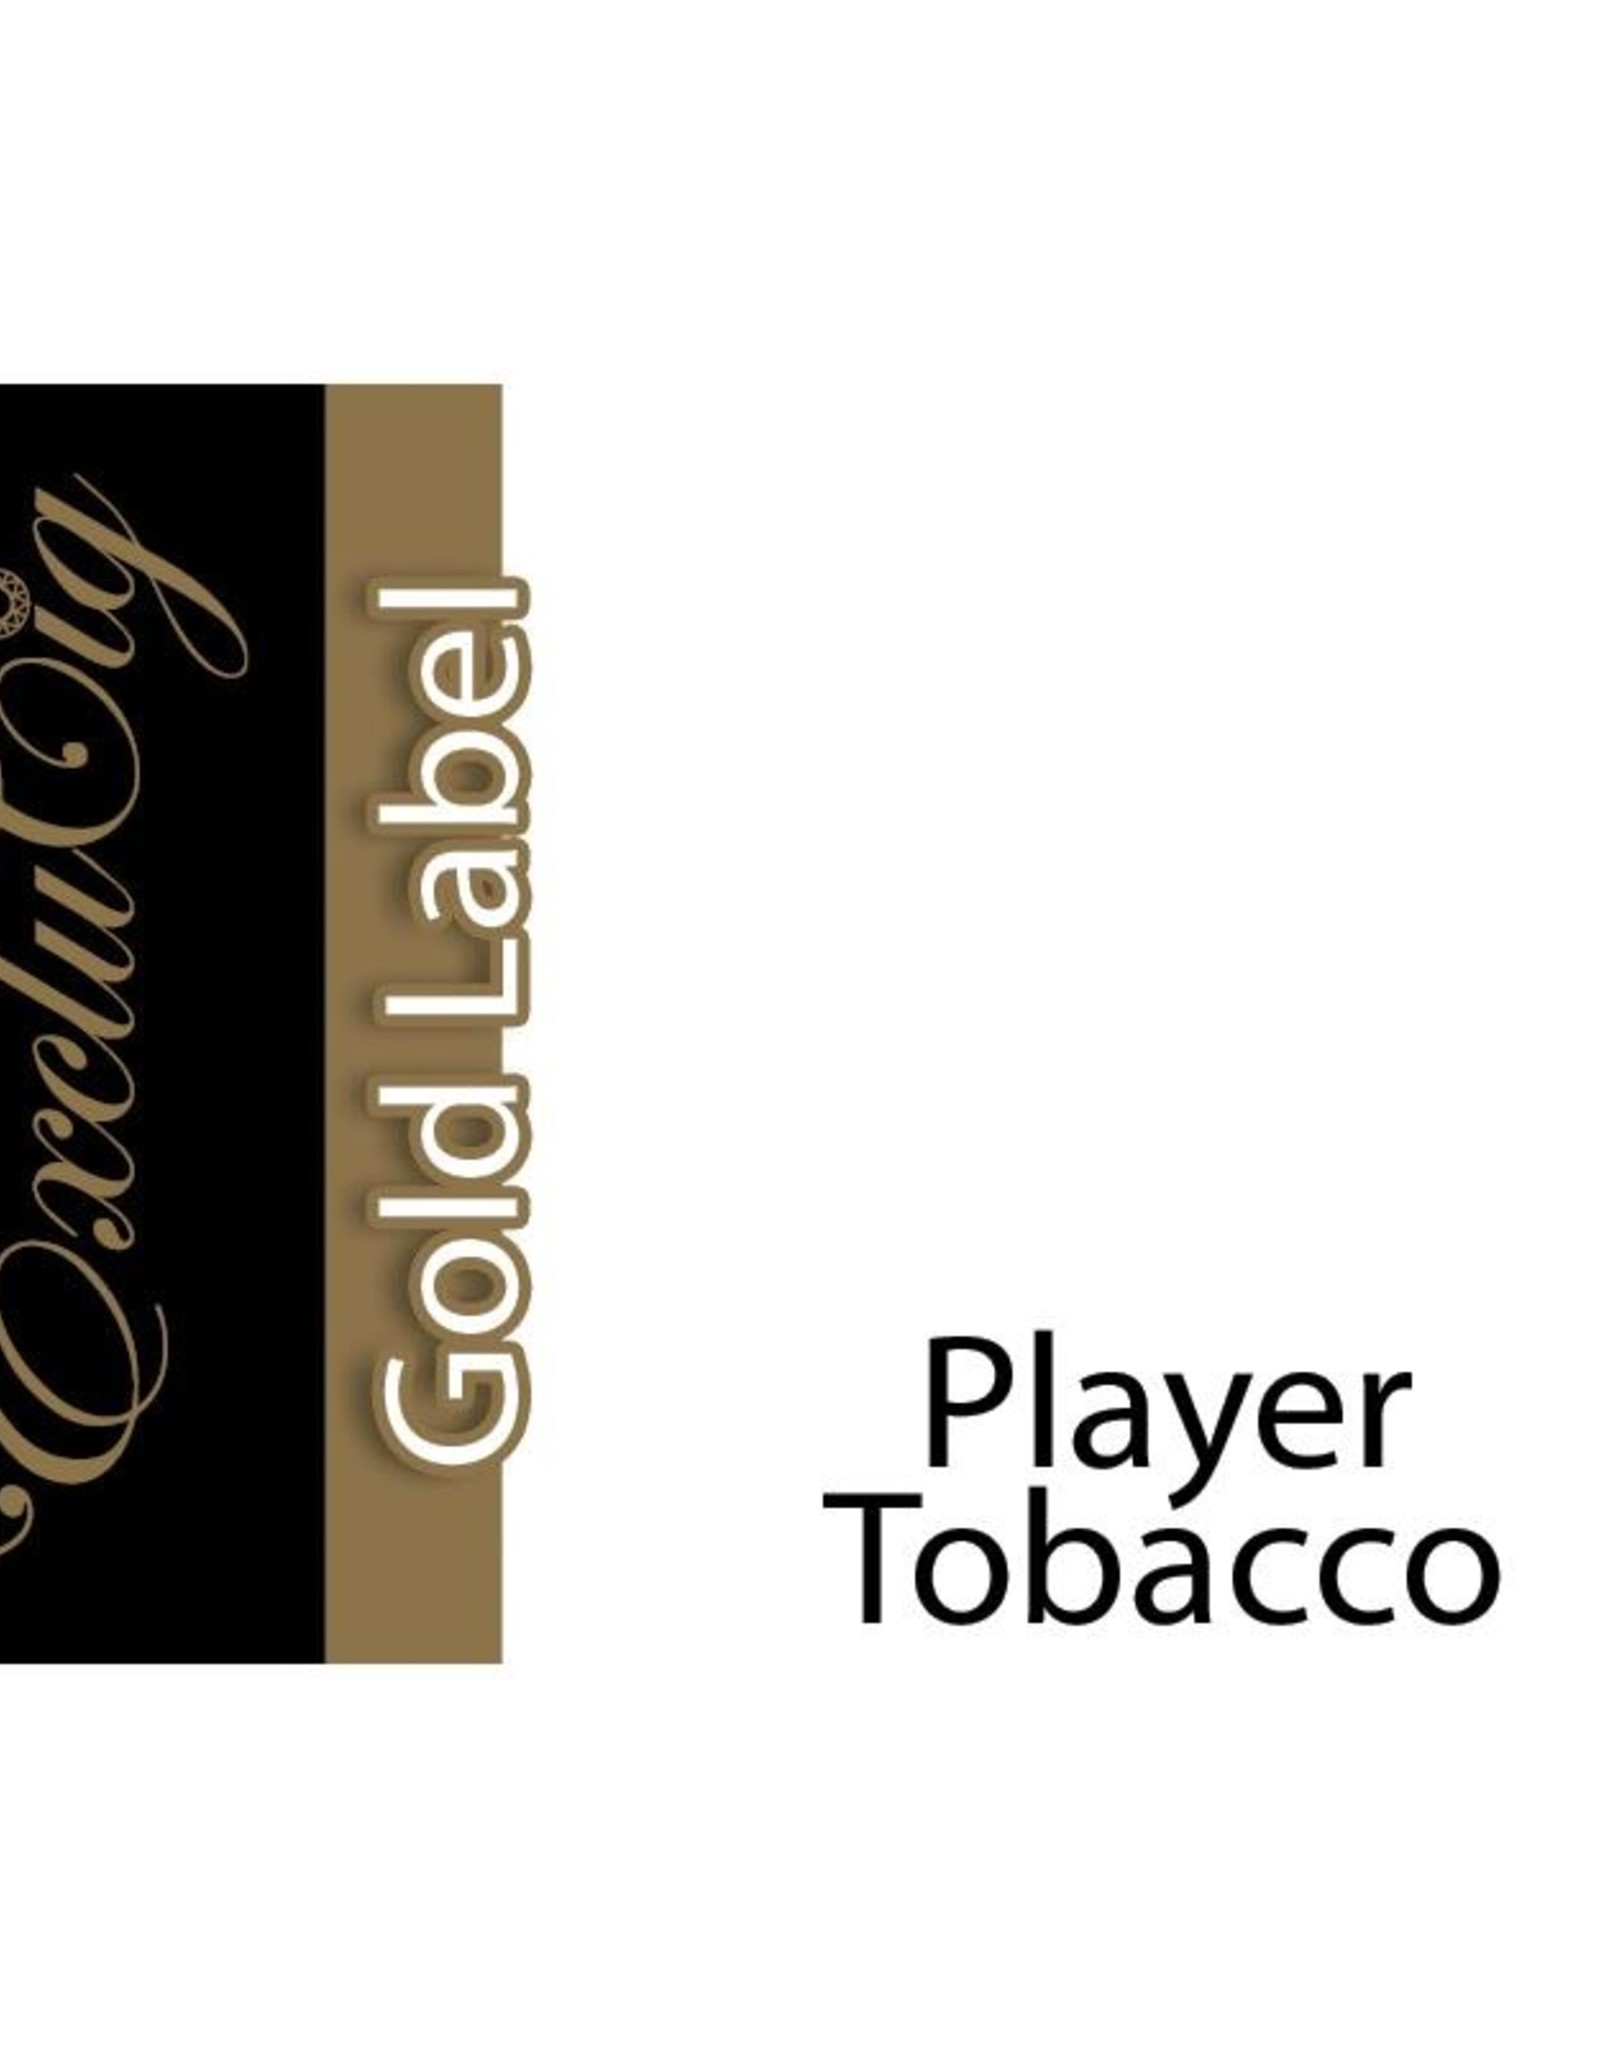 Exclucig Exclucig Gold Label E-liquid Player Tobacco 18 mg Nicotine